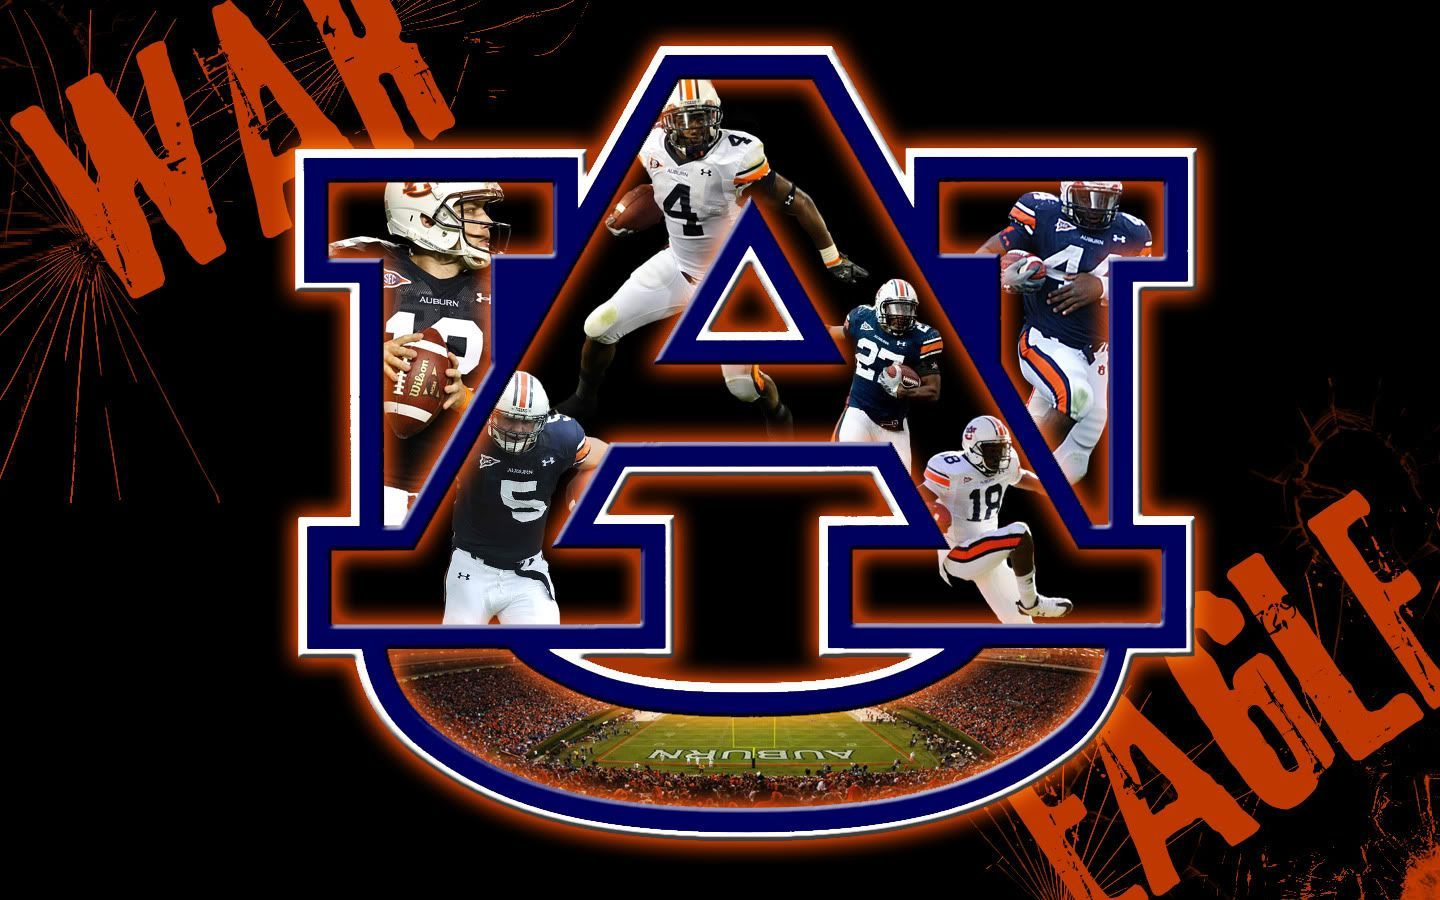 Auburn Football Wallpaper For Iphone